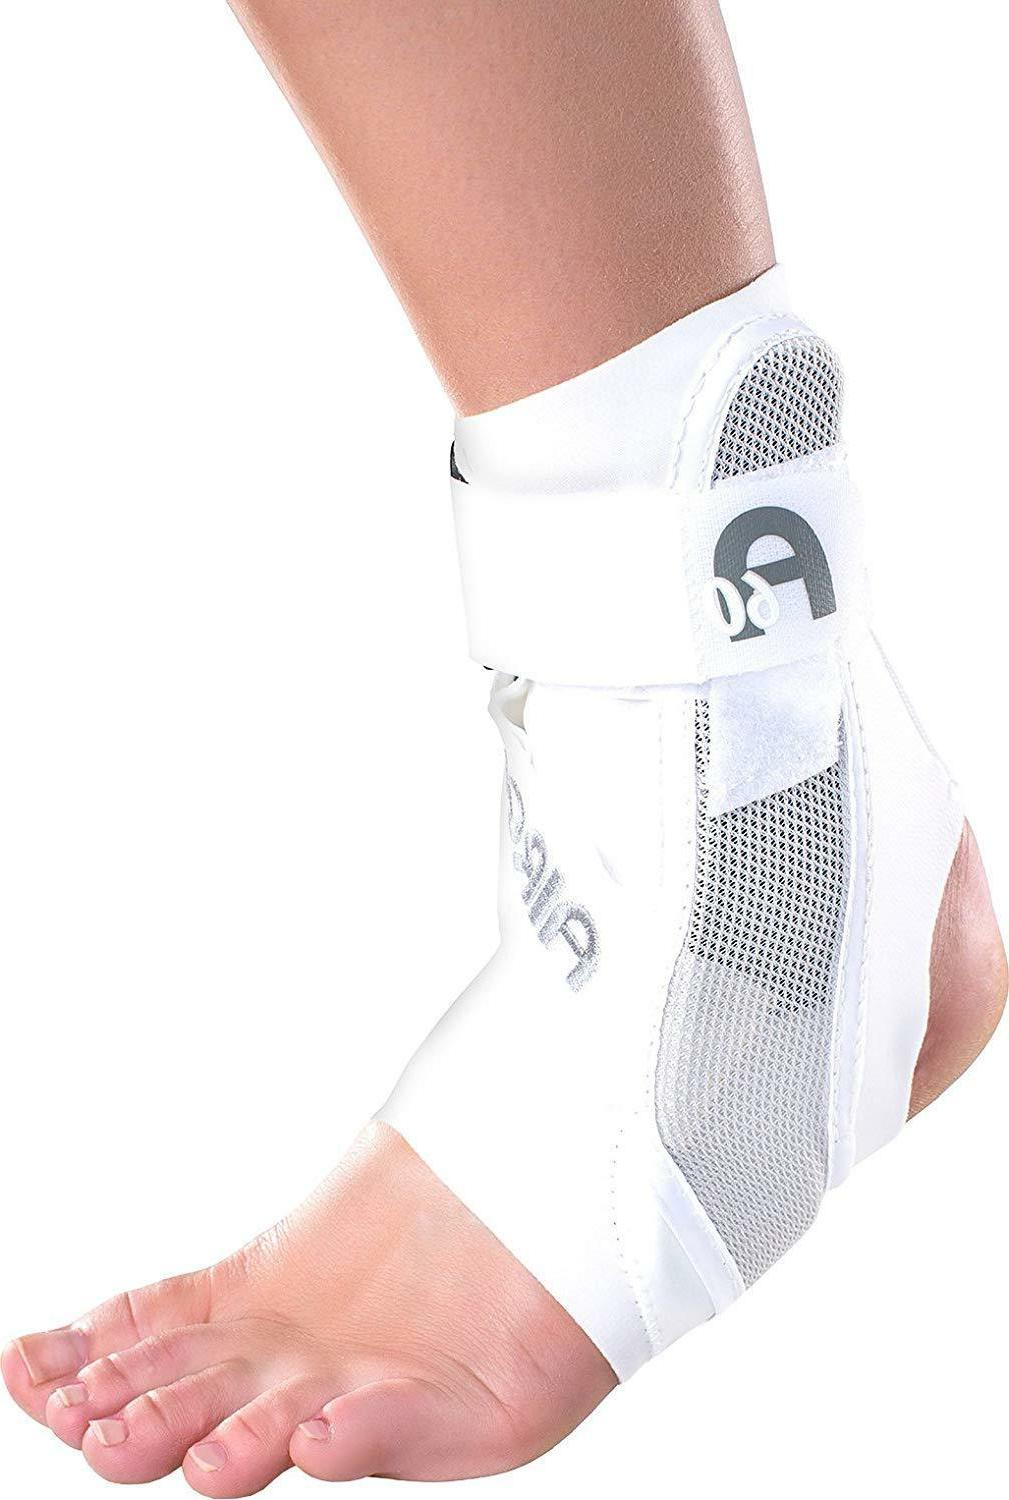 a60 ankle support brace